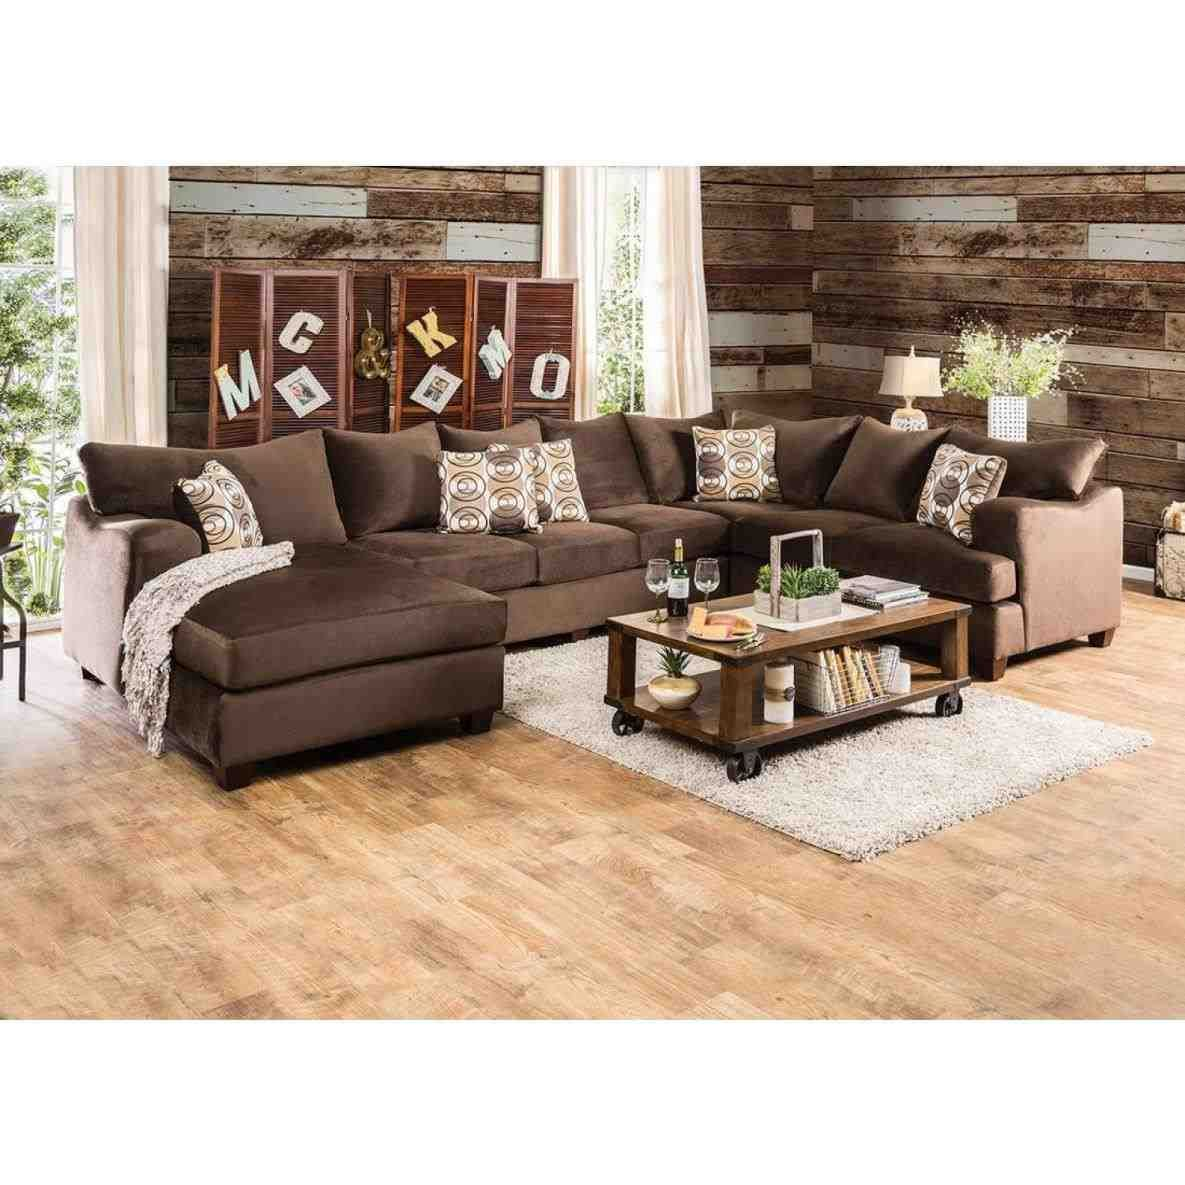 Cheap Living Room Furniture In Montgomery Al Full Size Of Chairs